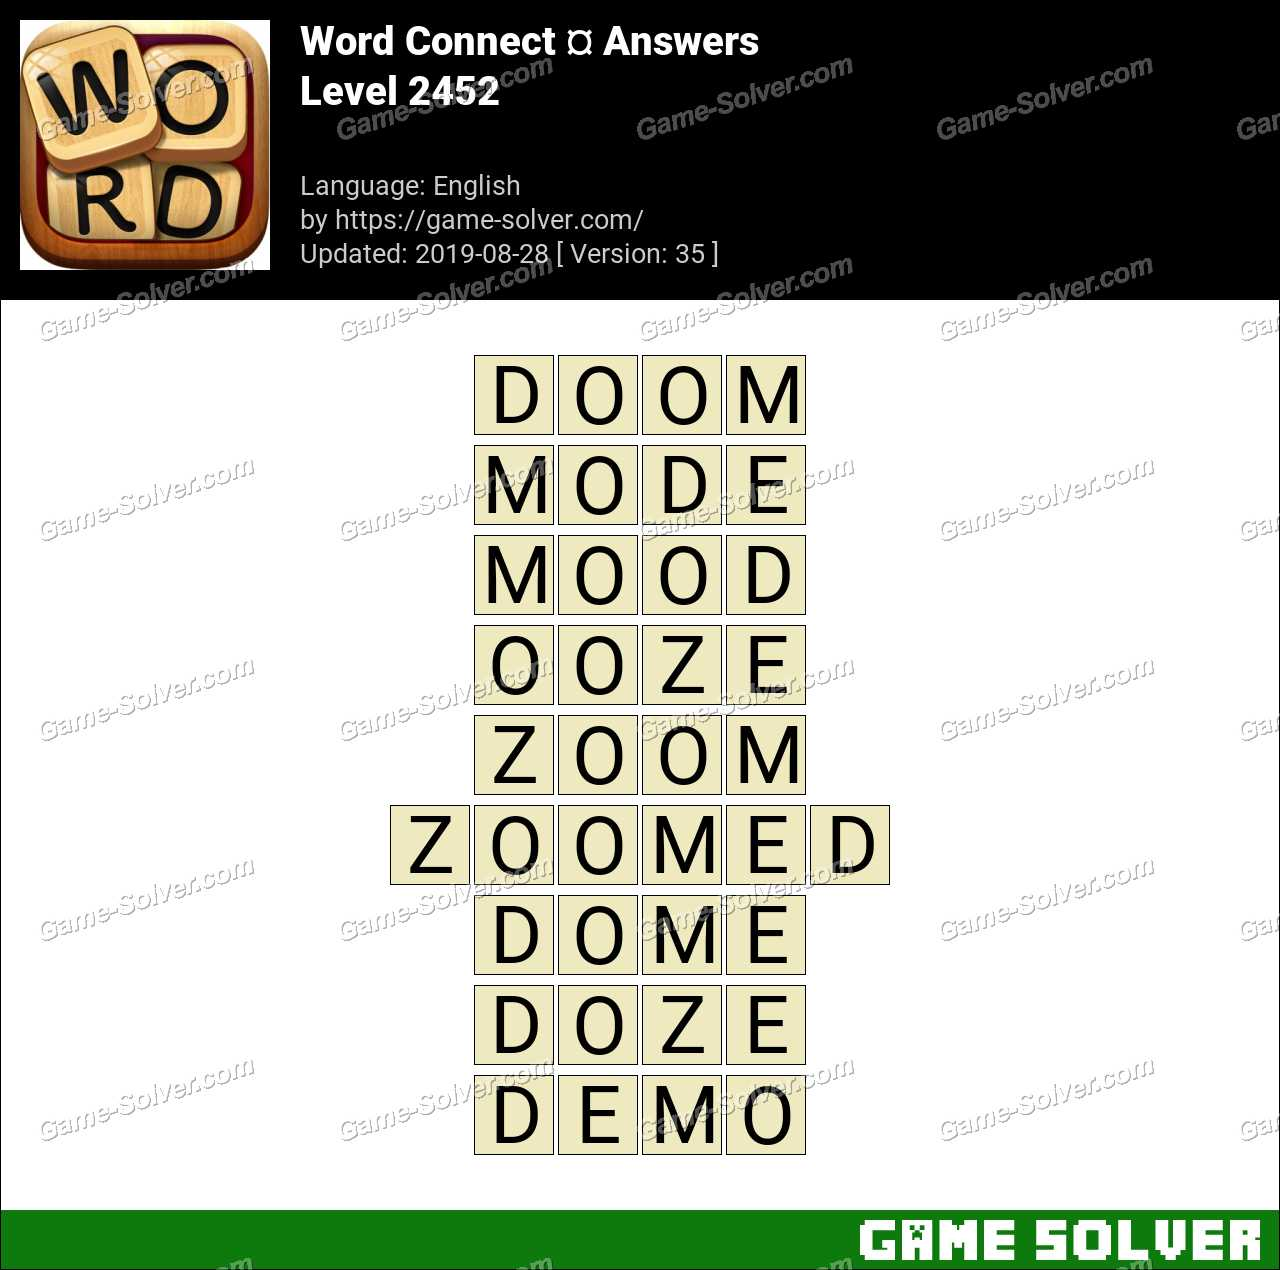 Word Connect Level 2452 Answers